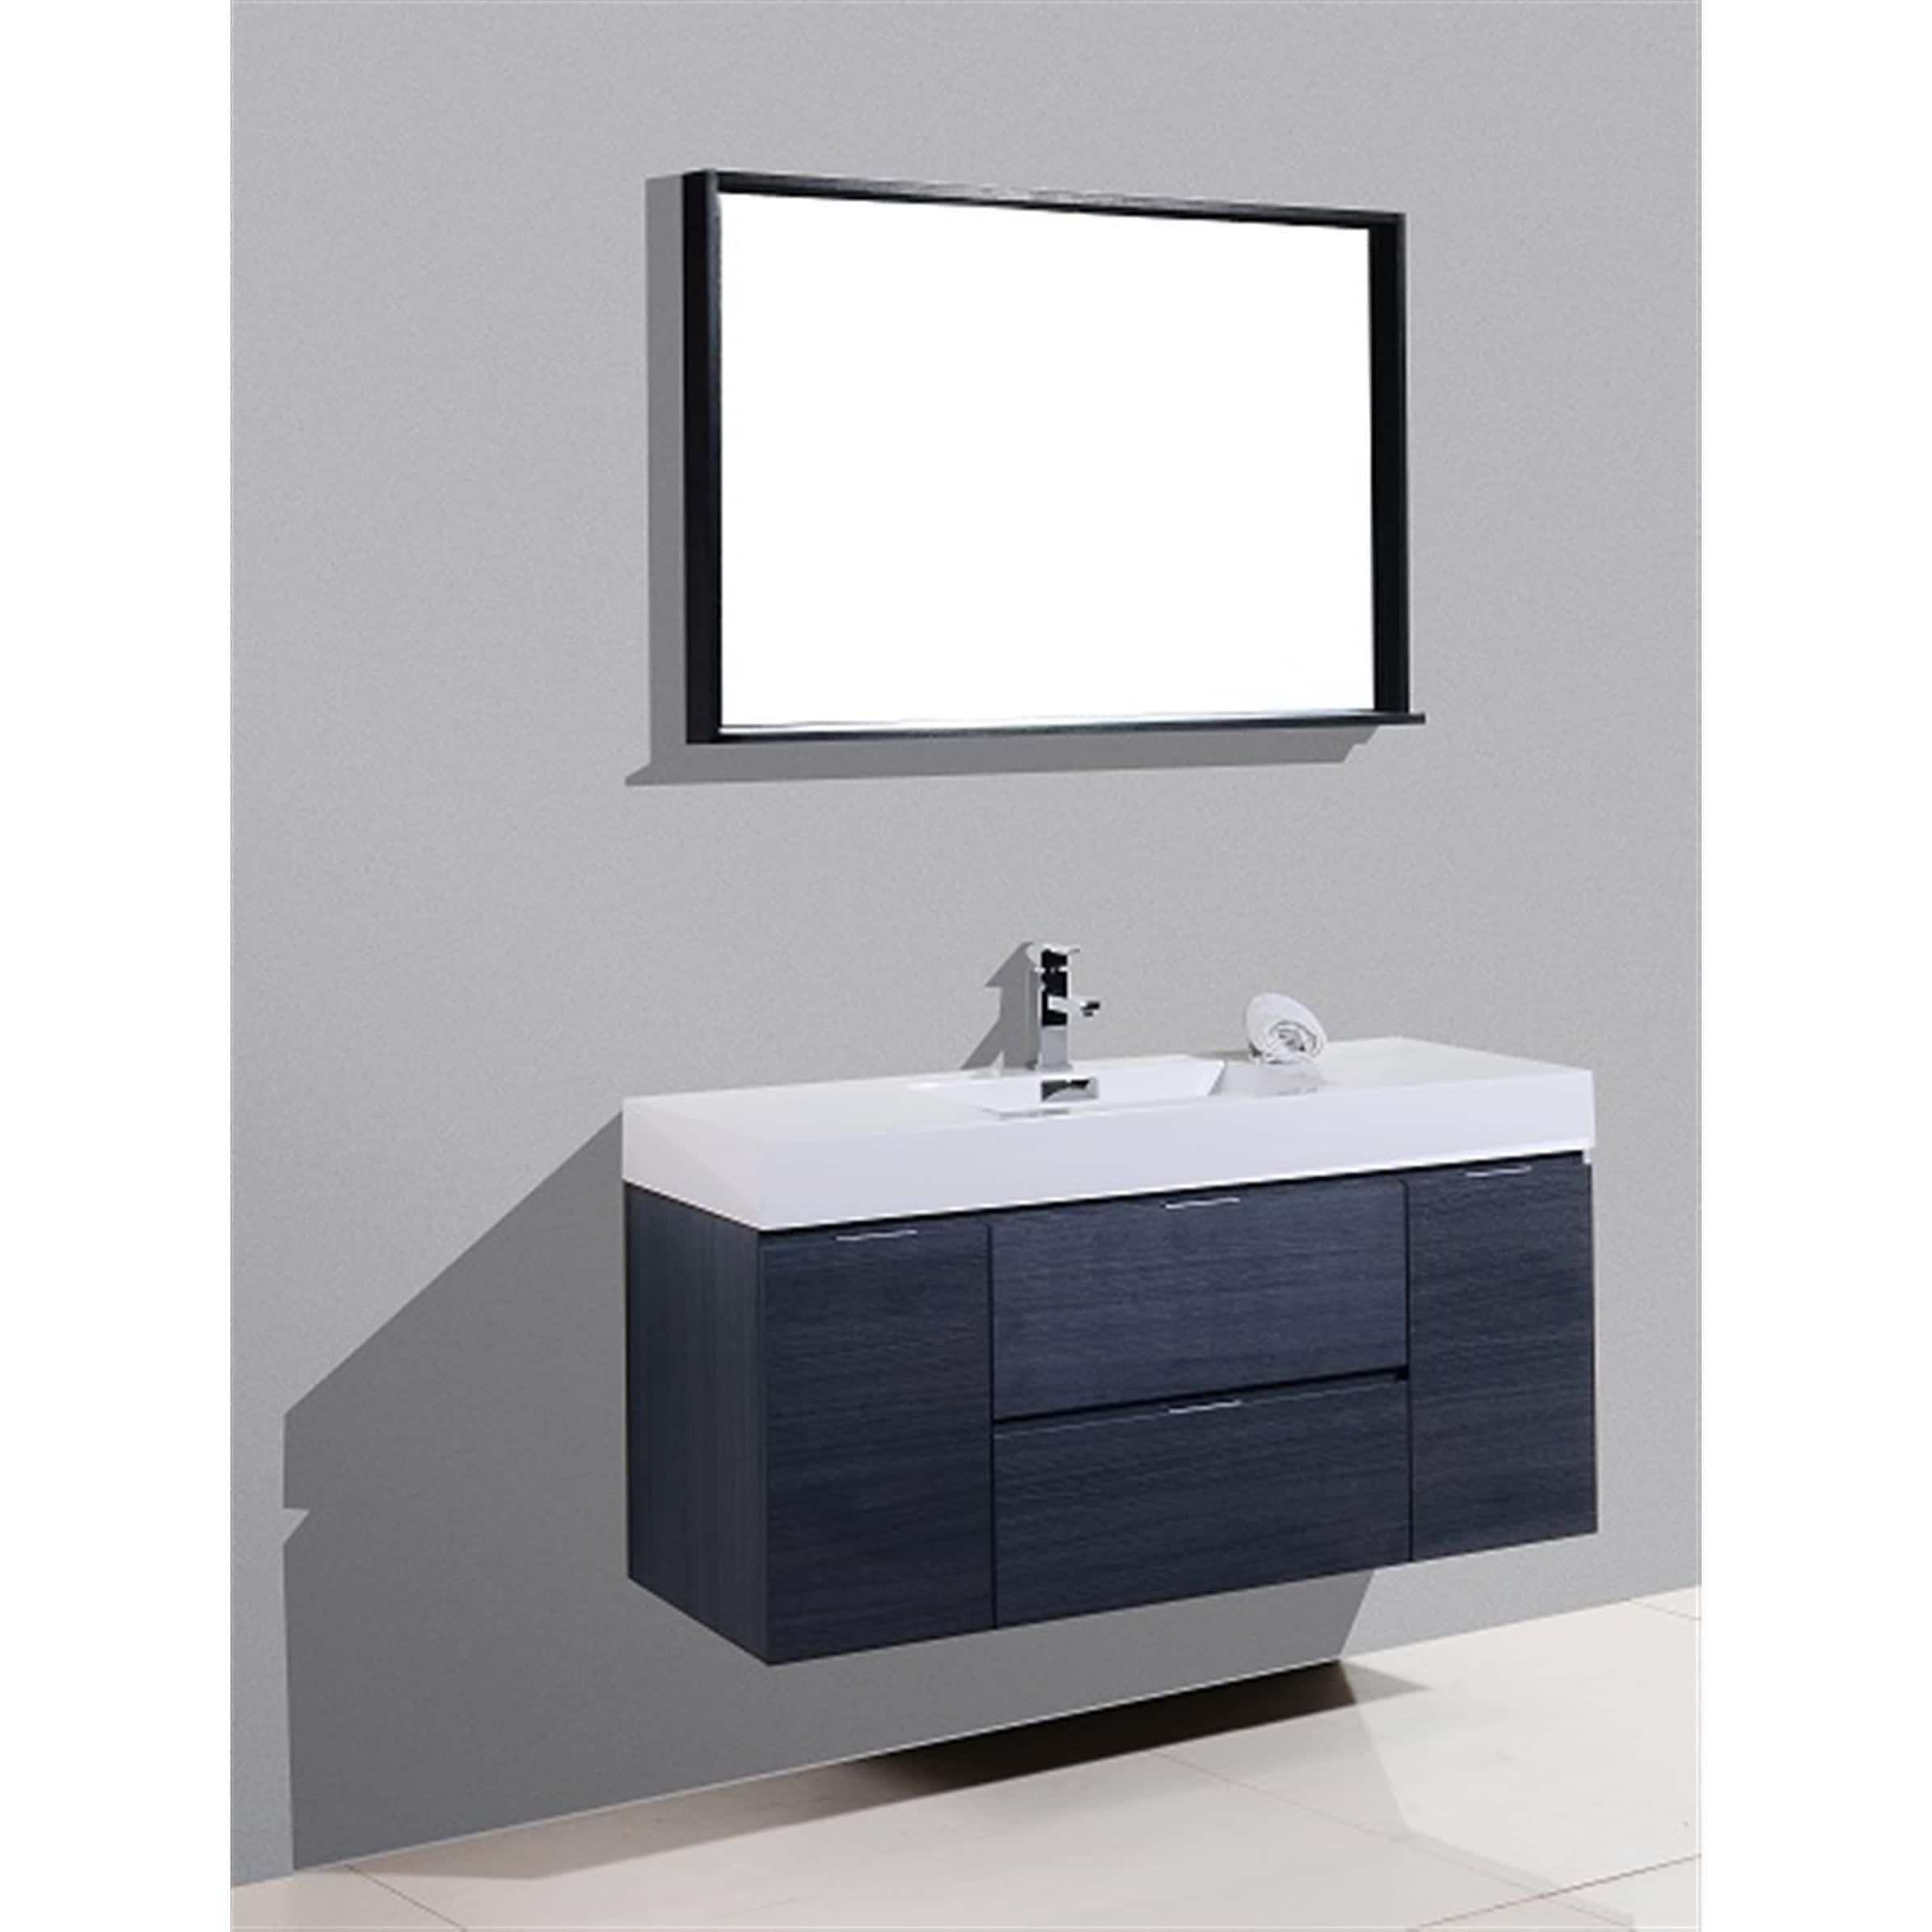 inch of design top inspirational bathroom vanity with wood bathrooms luxury double and full sink gray size home idea